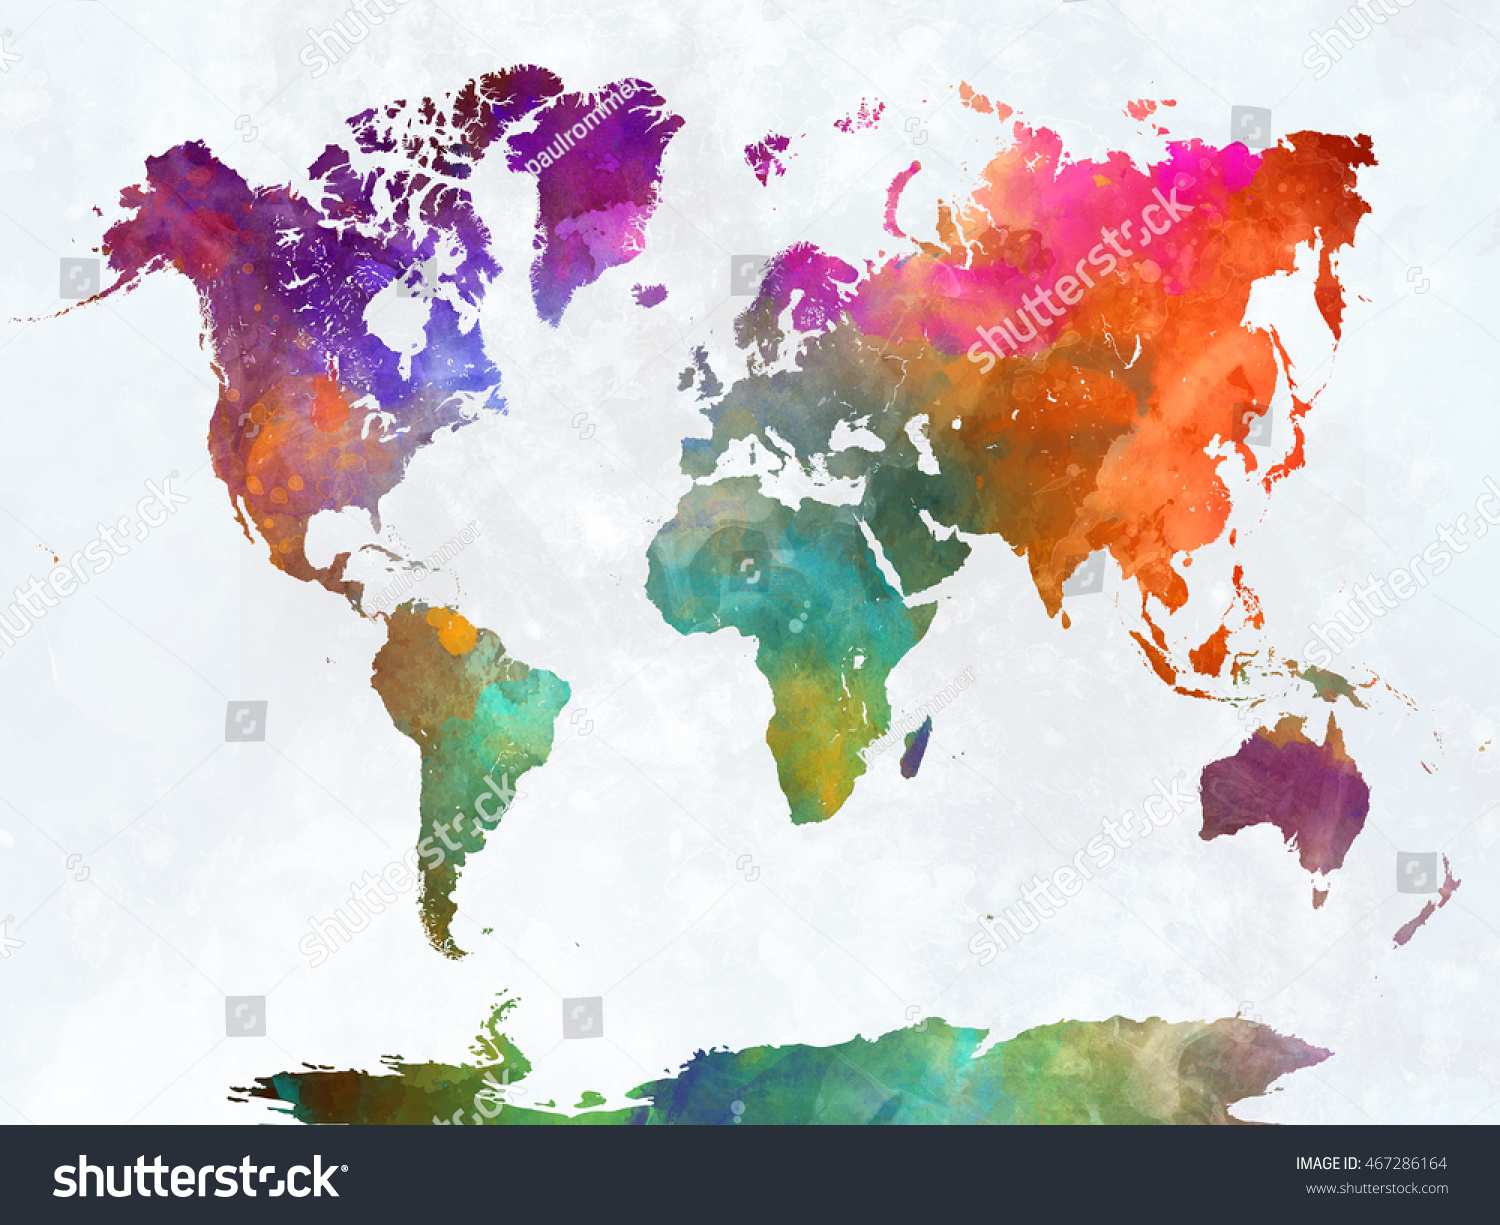 World map watercolor painting abstract splatters stock world map in watercolor painting abstract splatters gumiabroncs Image collections